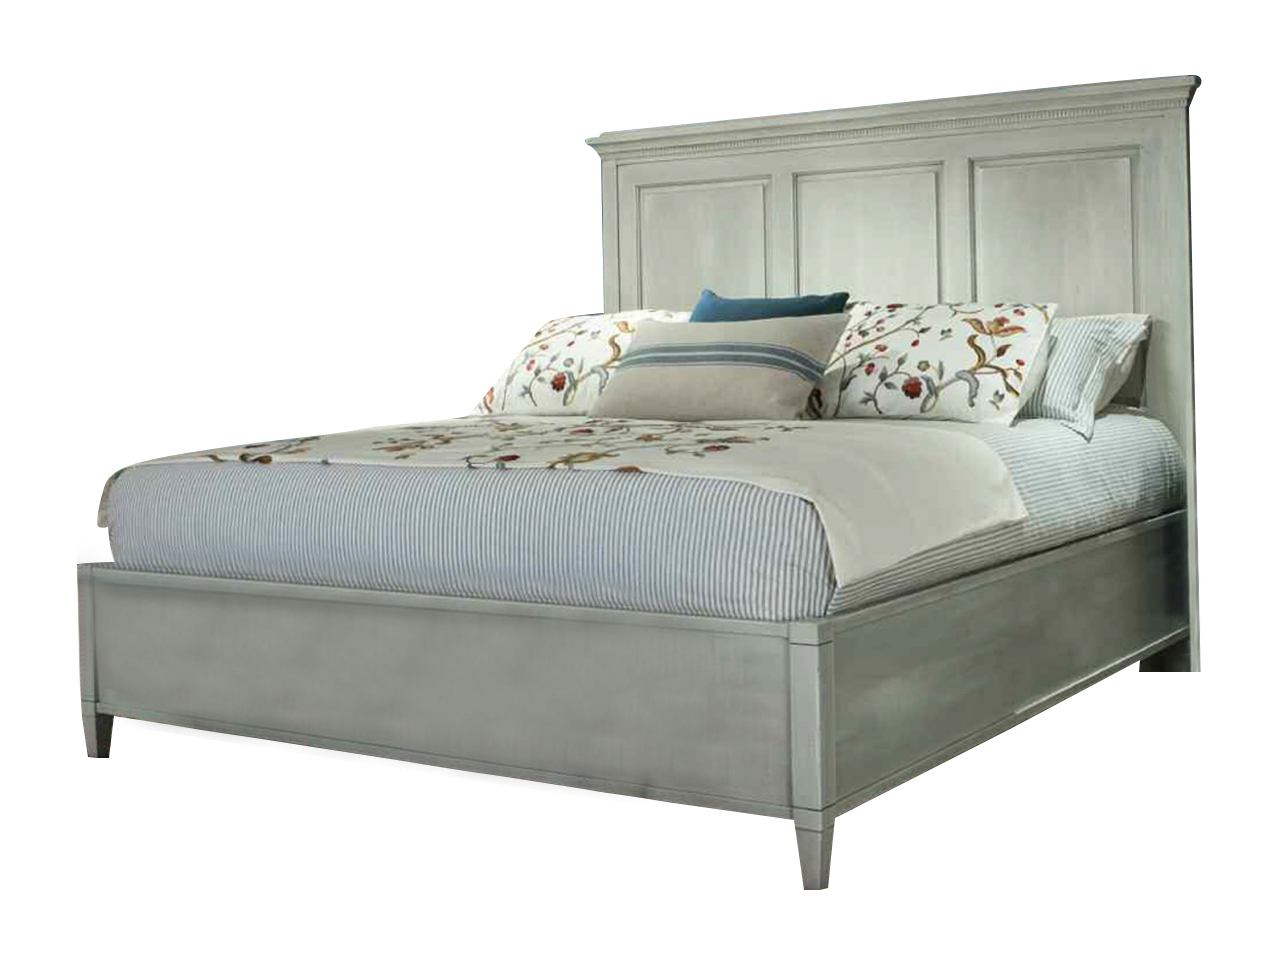 Durham Furniture Springville King Panel Bed in Truffle 145-144-TRFL